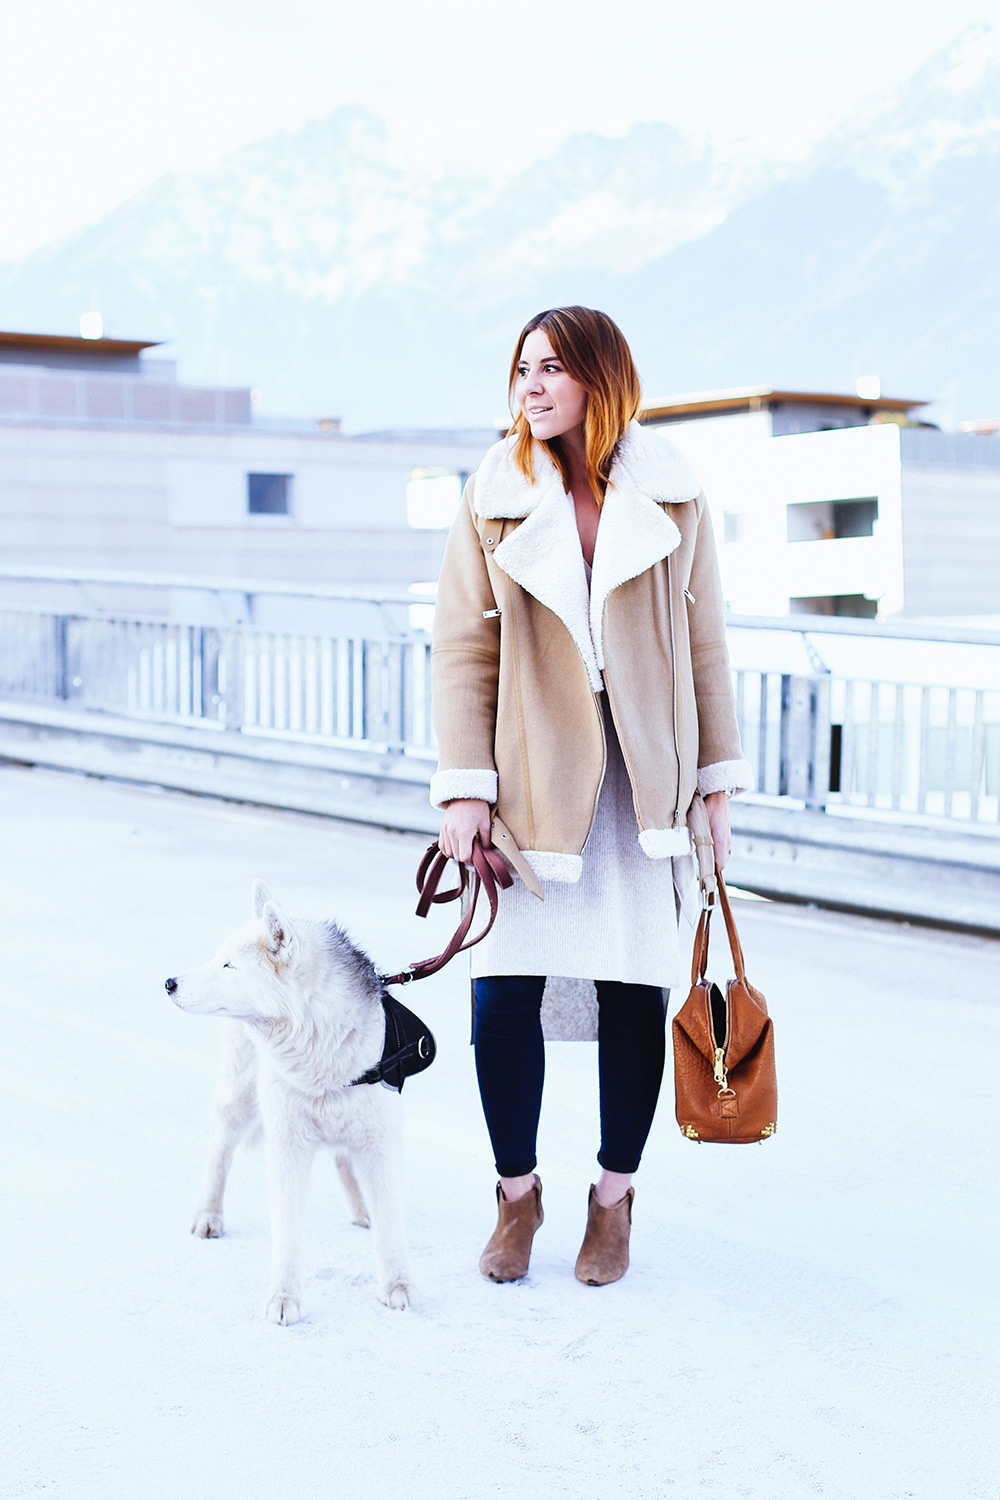 who is mocca, modeblogger, fashionblogger, acne lookalike biker jacke, velocite jacket, zara acne jacke, husky, innsbruck, streetstyle, frenchie, skinny jeans, layering, lagenlook, whoismocca.com